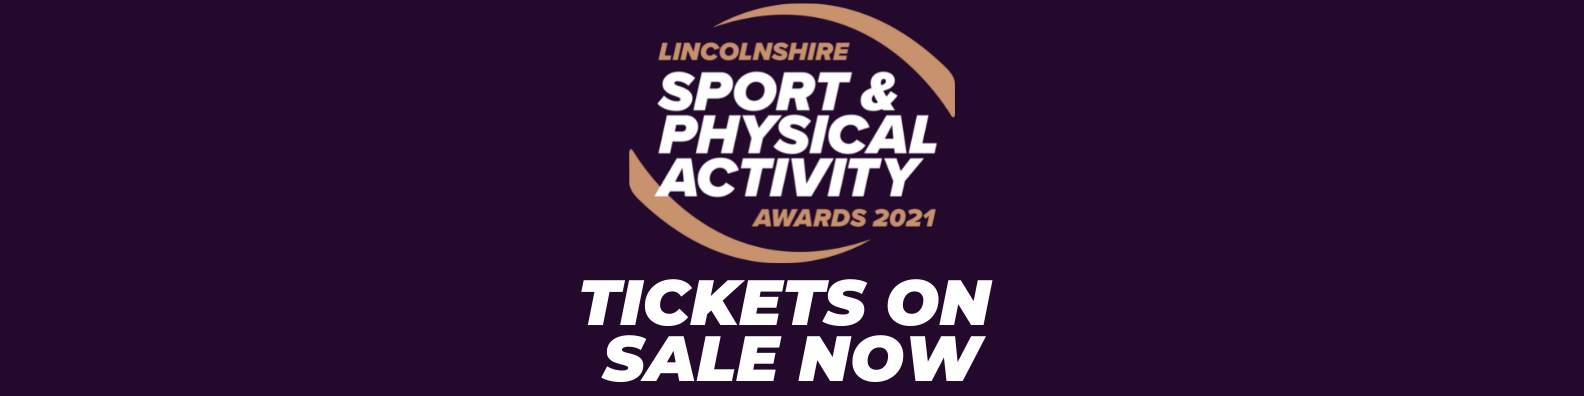 Excitement builds ahead of Lincolnshire Sports & Physical Activity Awards